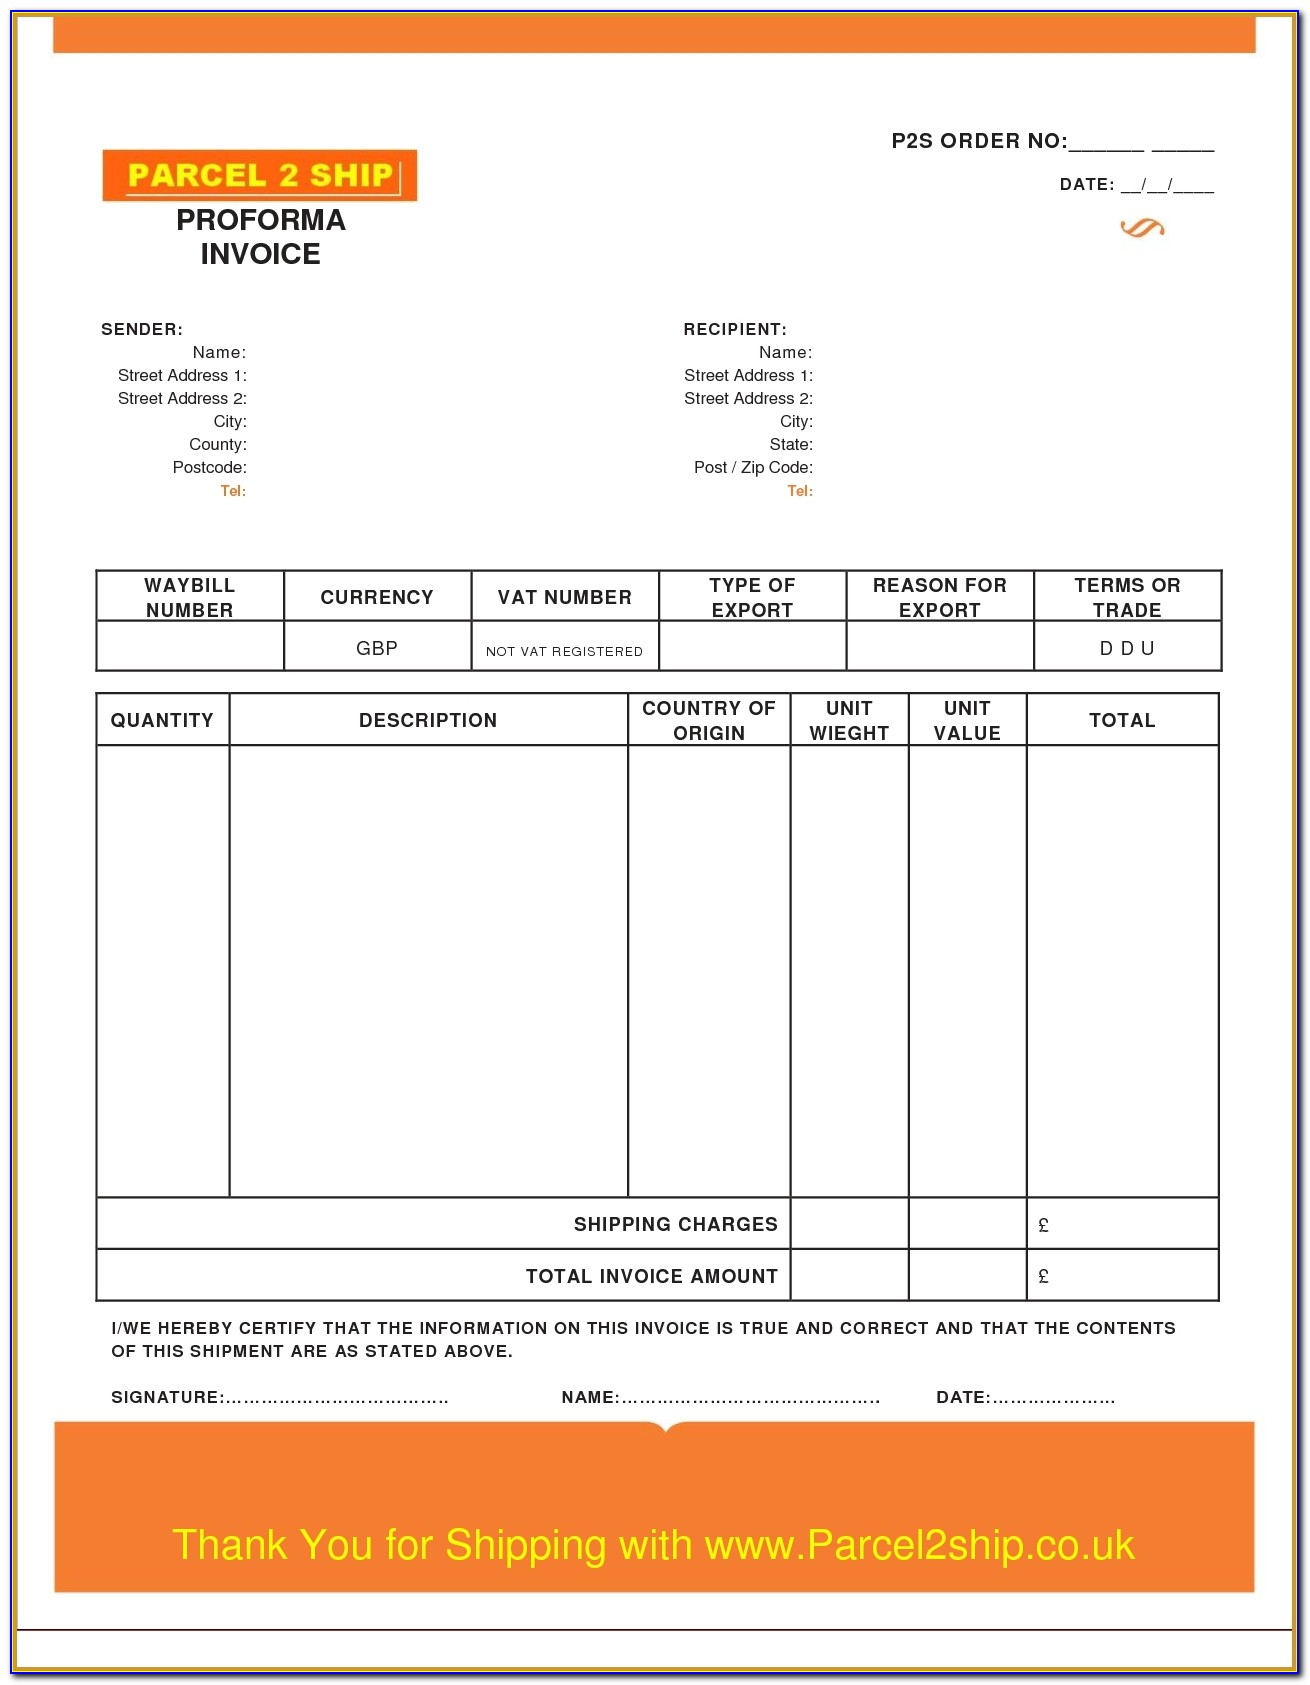 Proforma Invoice Sample Excel 13 Samples And The Importance Of Proforma Invoice Template Excel 1283 X 1658